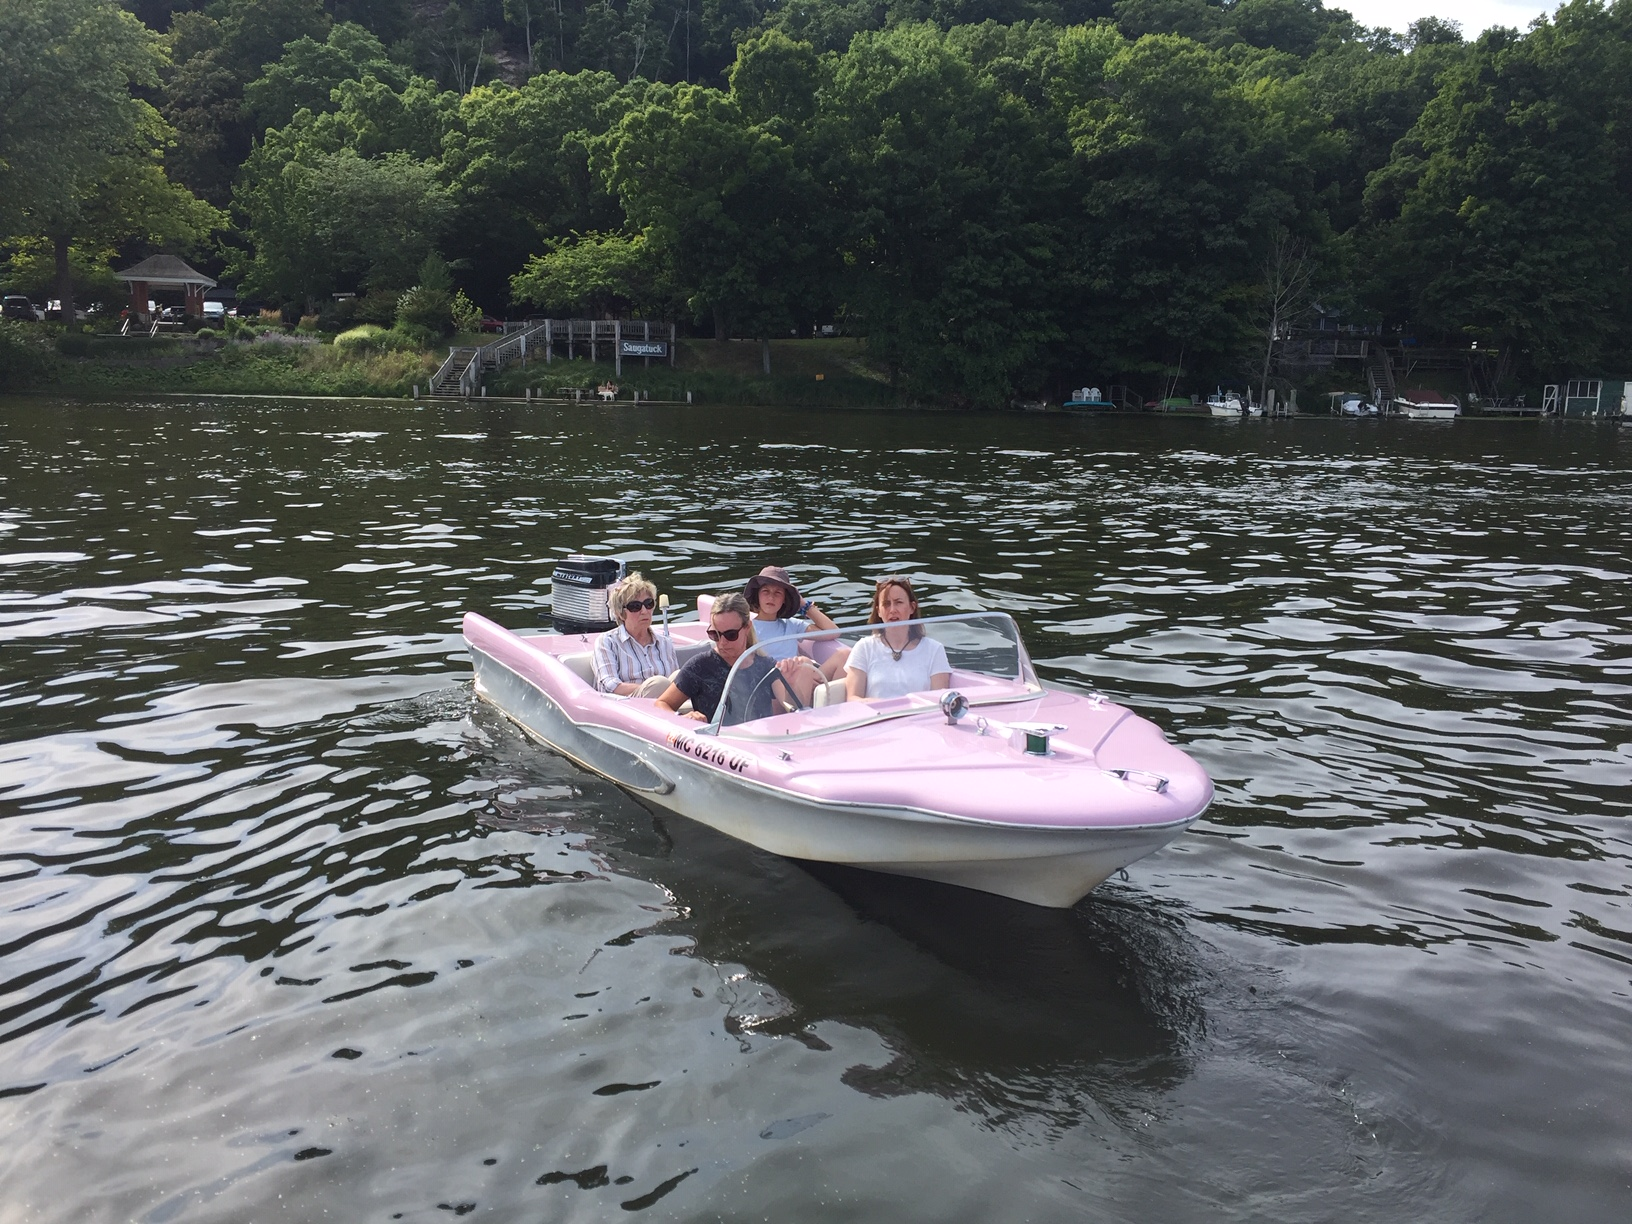 Cruising in Saugatuck MI in Retro Boat Gidget